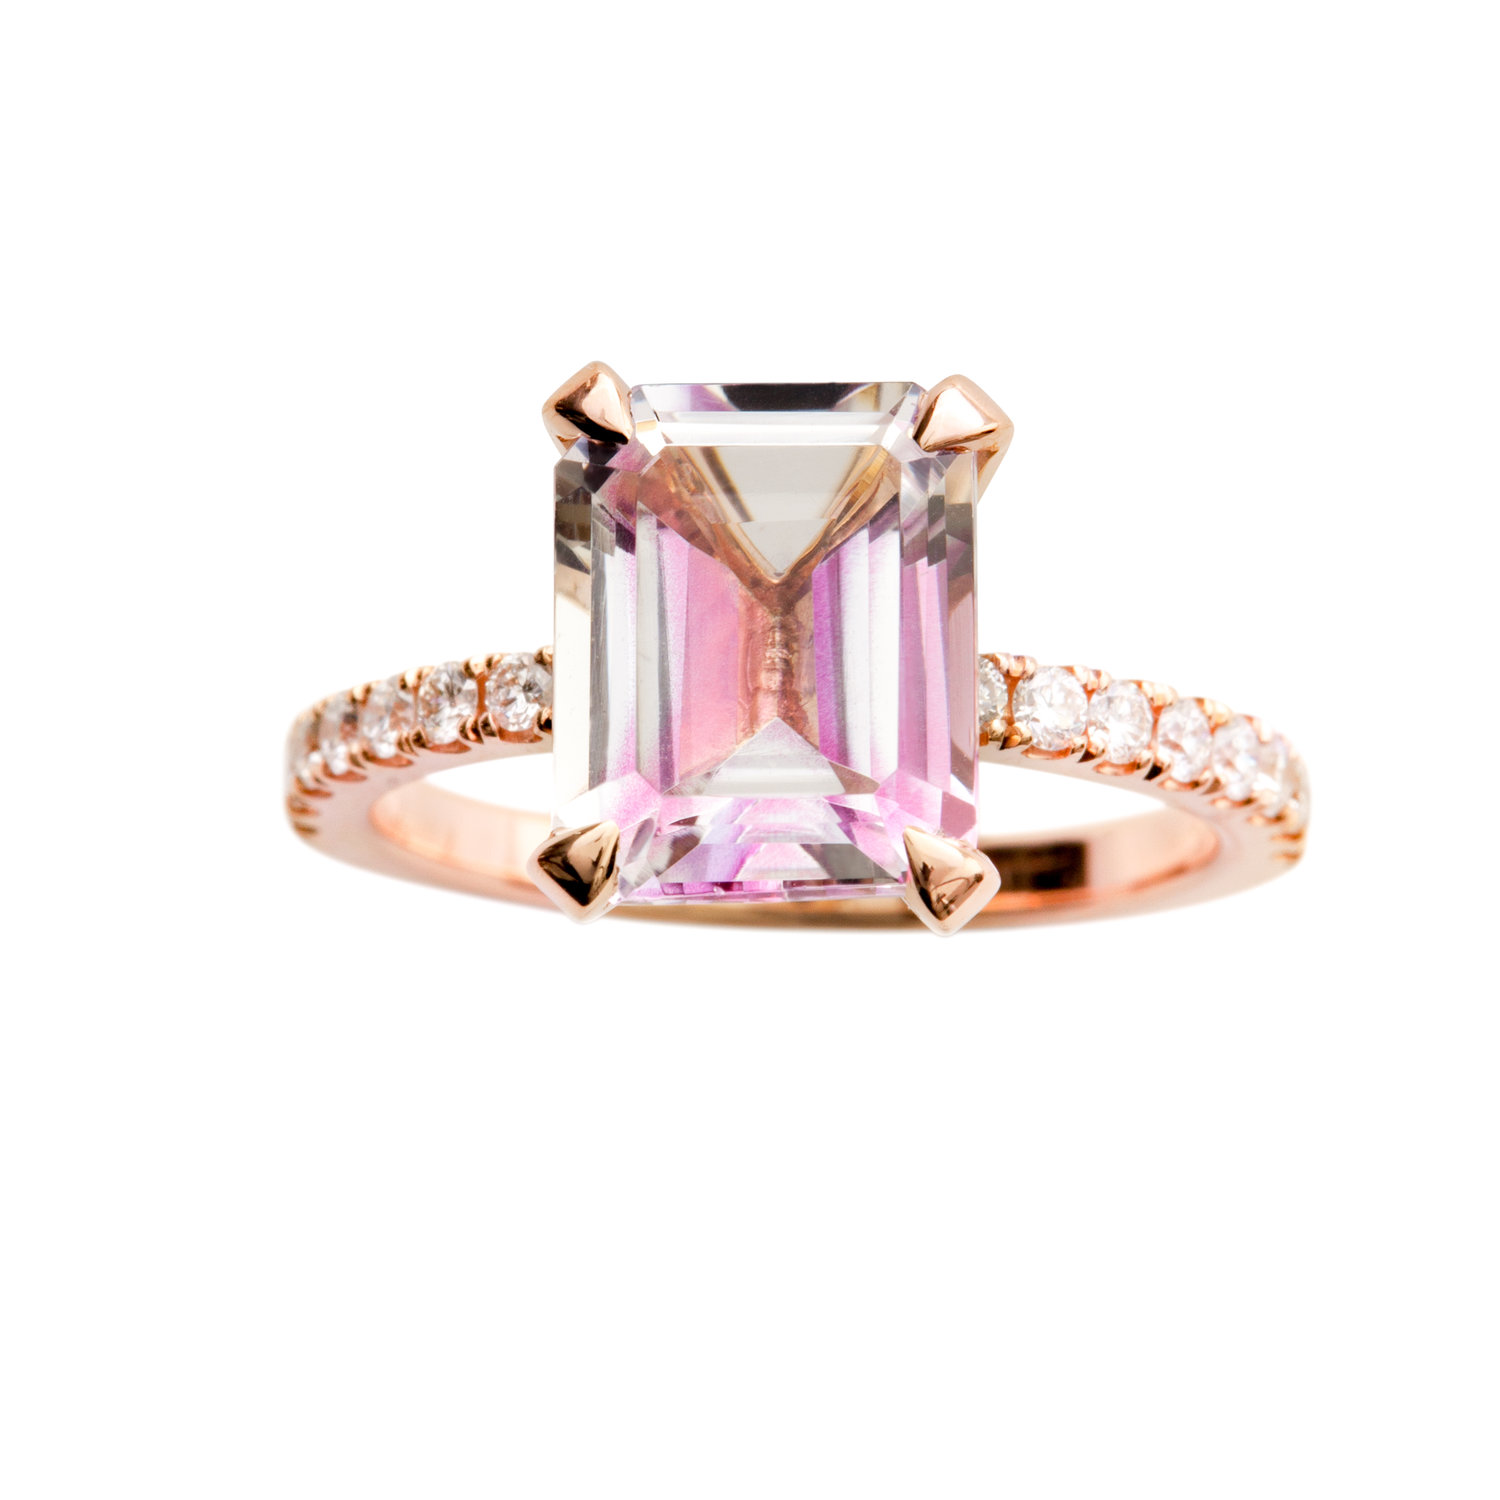 TOPAZ ENGAGEMENT RING - 25.000 NOK. 18 ct rose gold. 3,69 ct emerald cut light pink topaz. 0,25 ct diamonds.